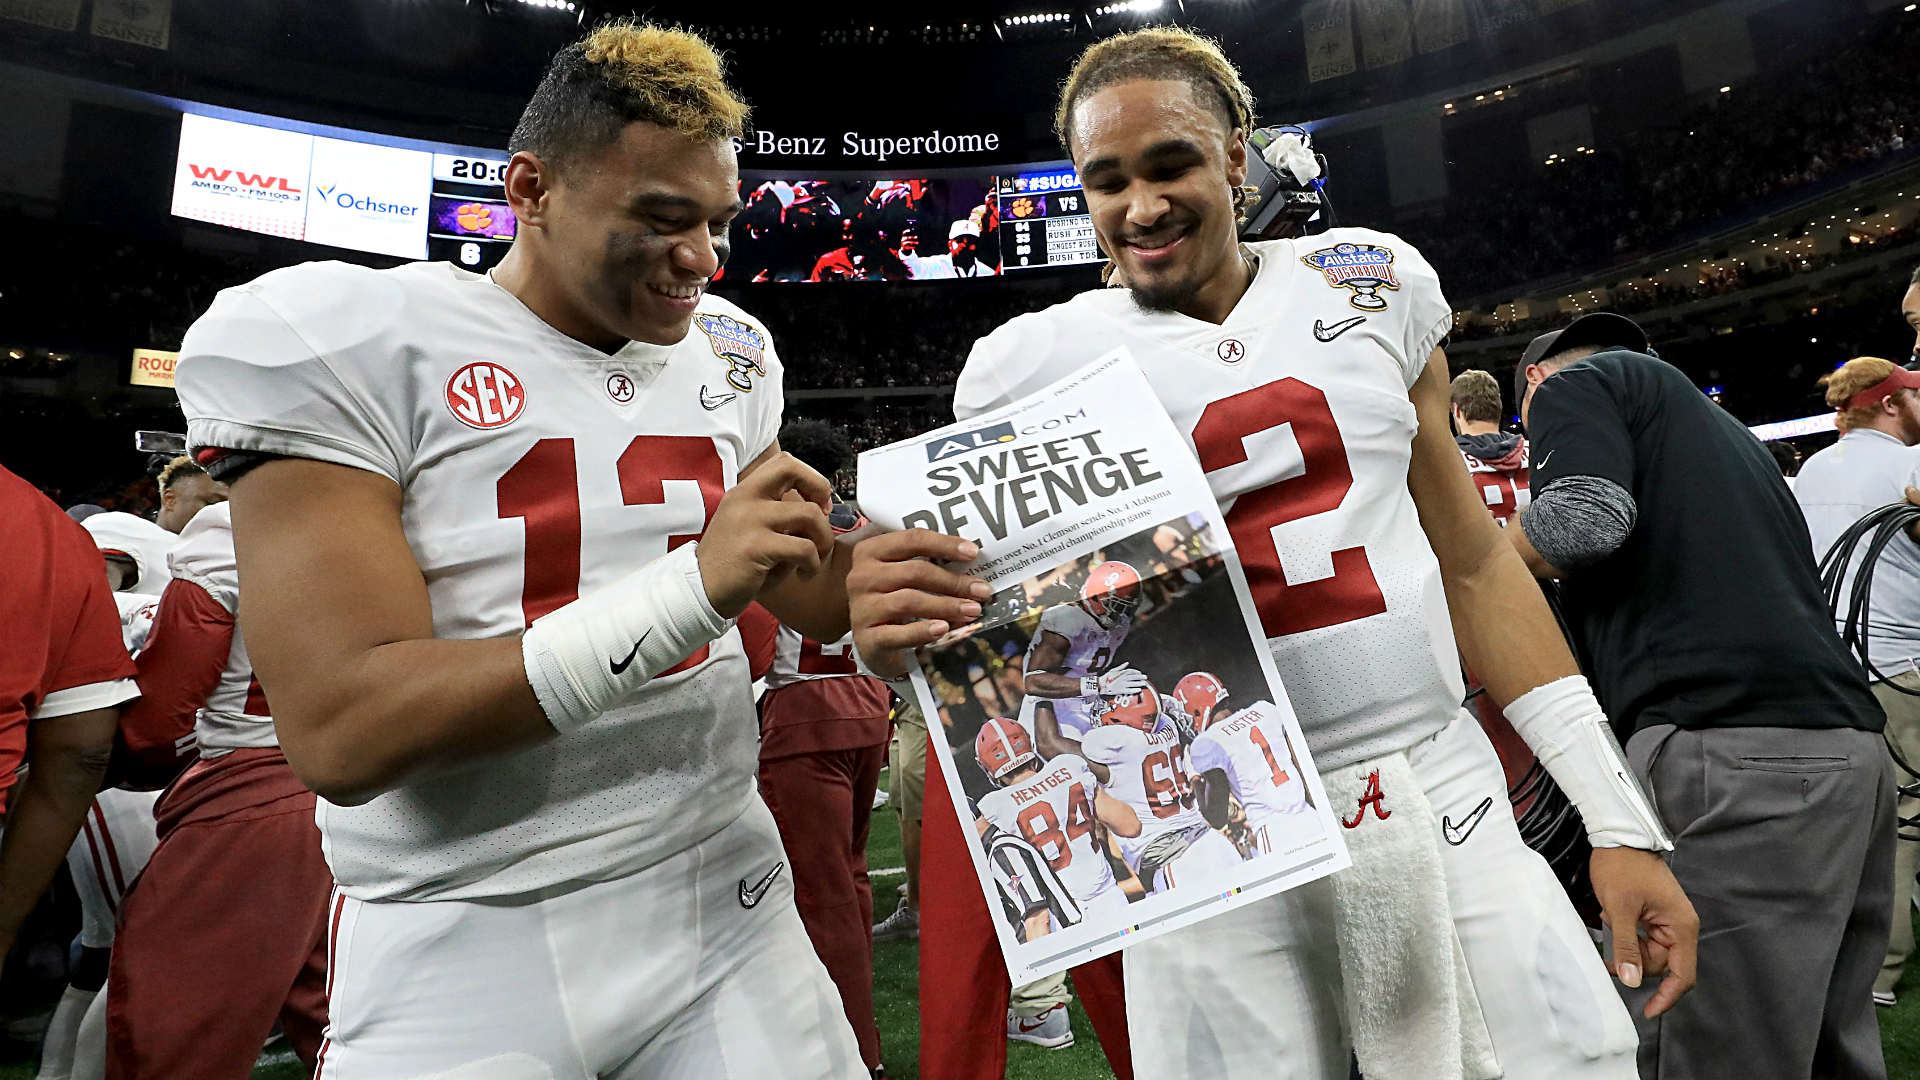 Nick Saban rips reporter after another Alabama QB question, later apologizes